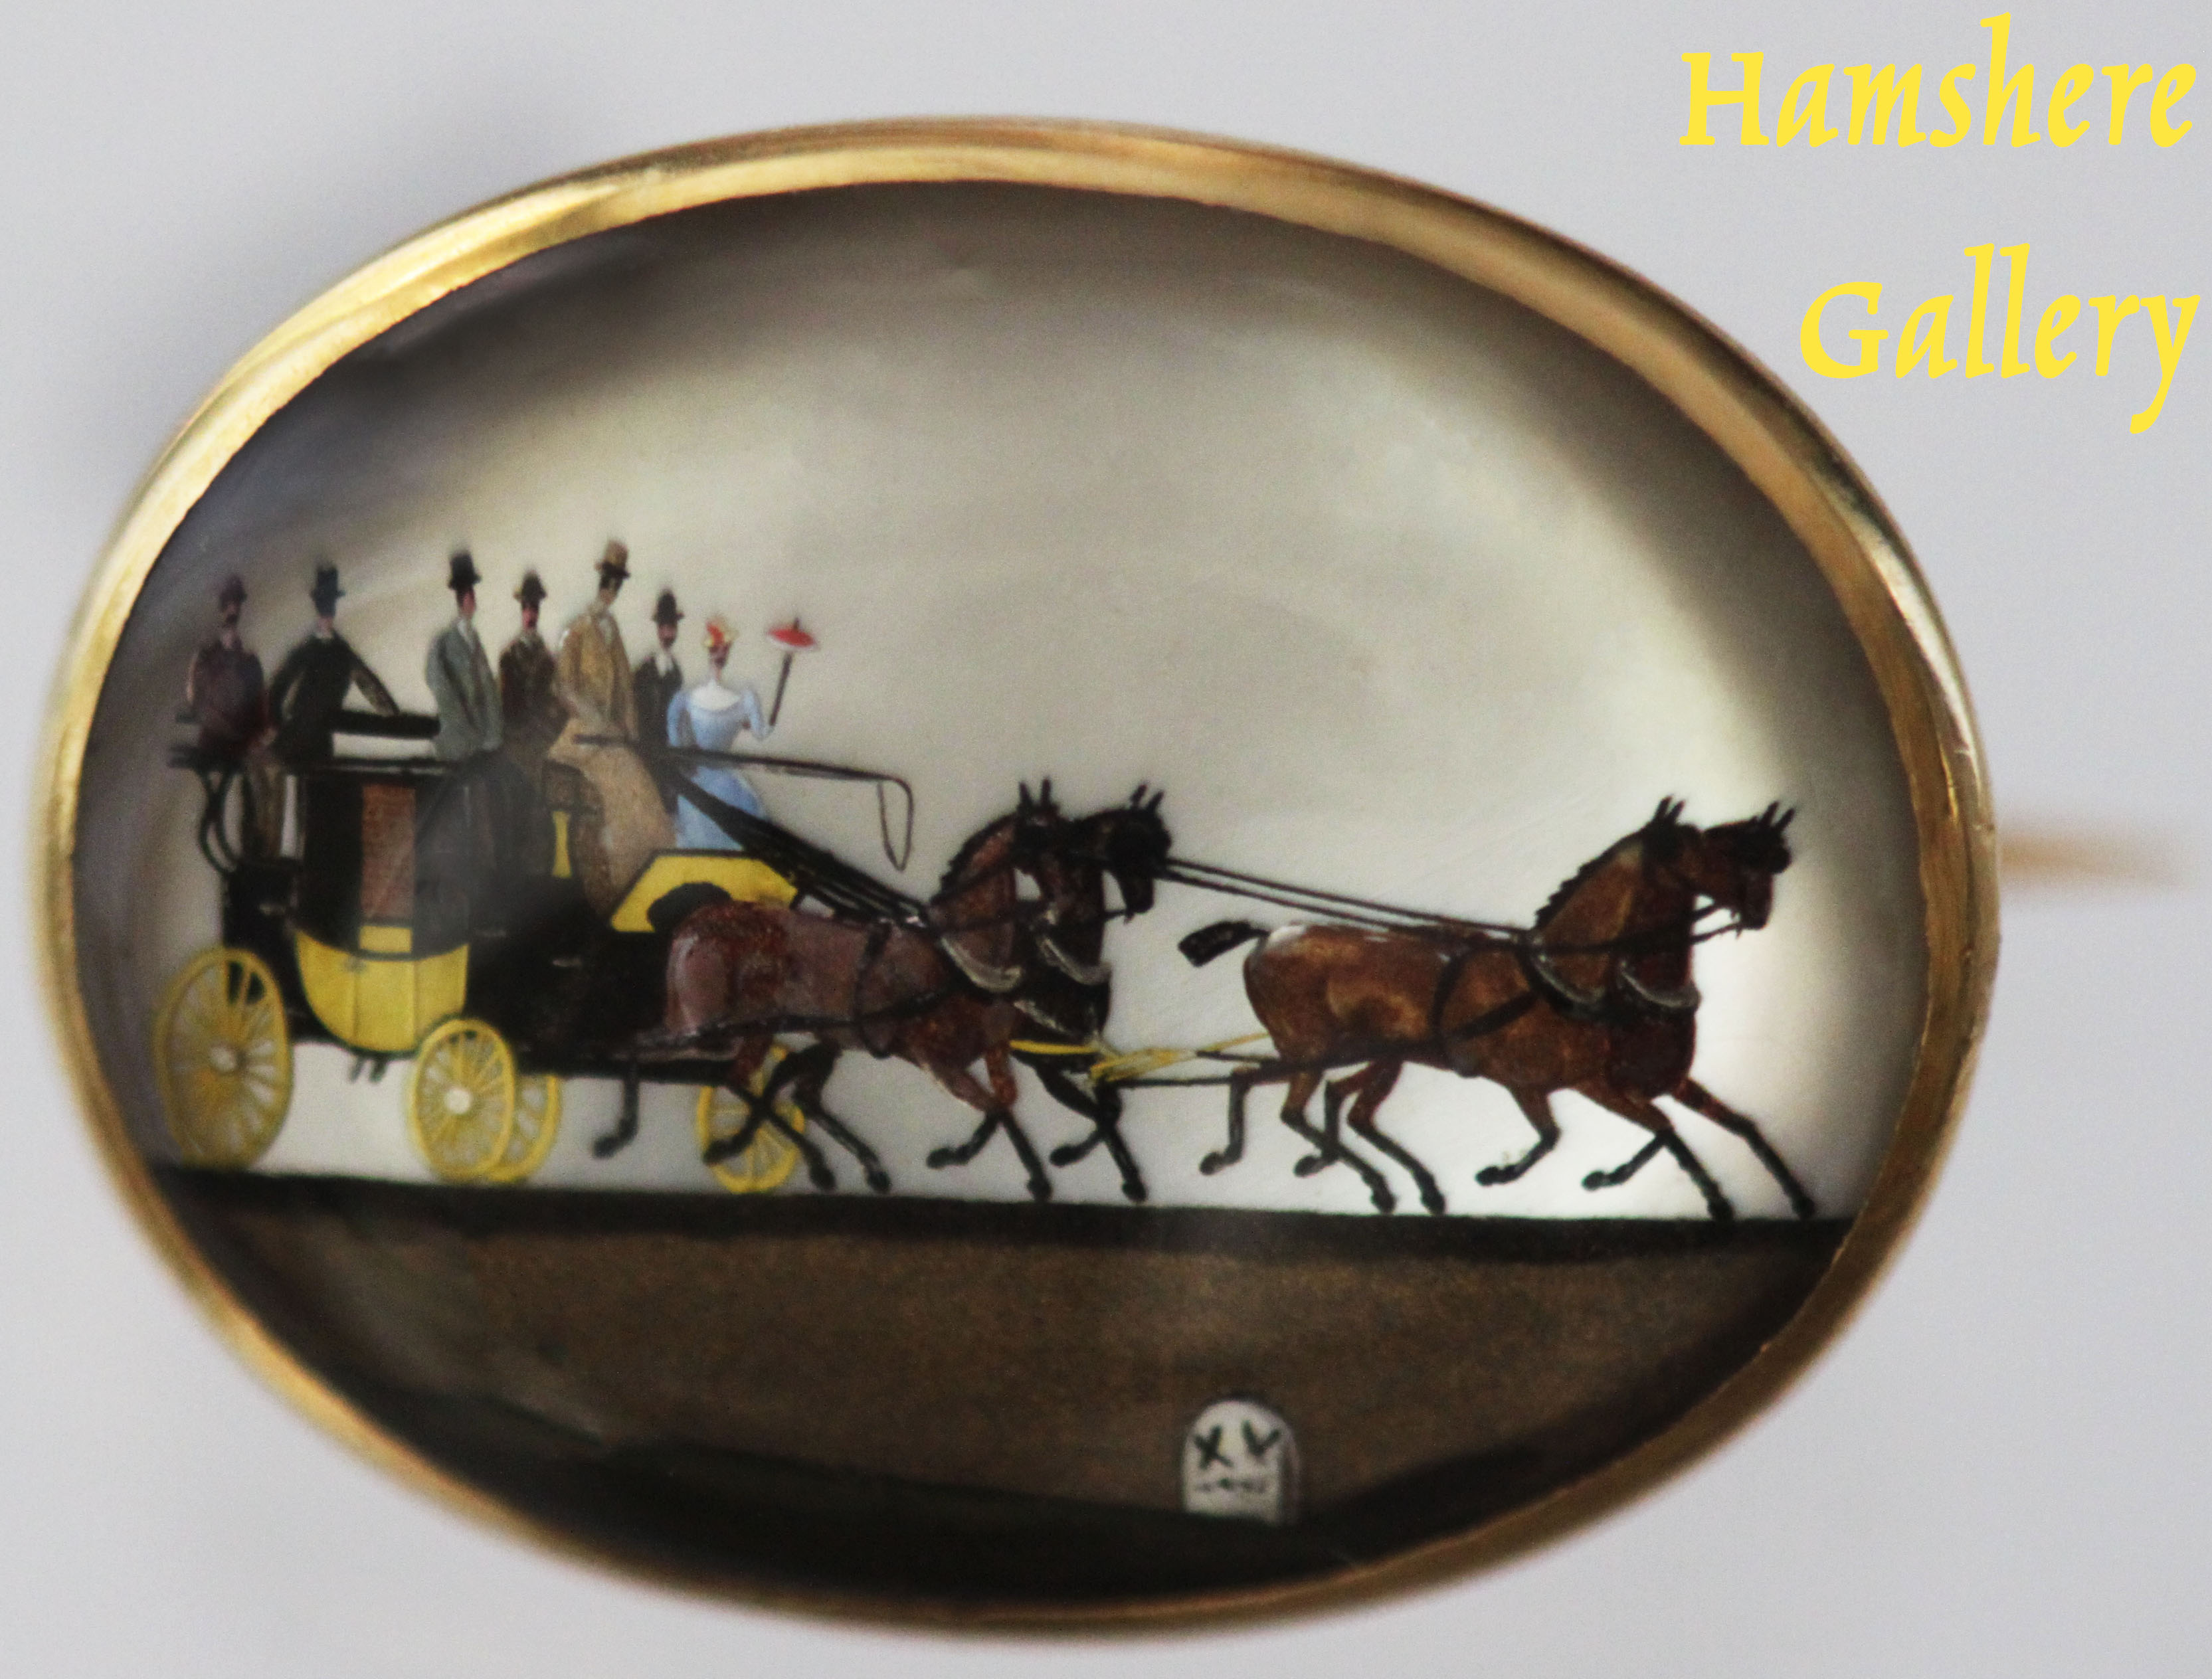 Click to see full size: 18 carat gold set Victorian oval reverse intaglio carriage / coaching / four-in-hand in the livery of Bugatti Yellow- 18 carat gold set Victorian oval reverse intaglio carriage / coaching / four-in-hand in the livery of Bugatti Yellow